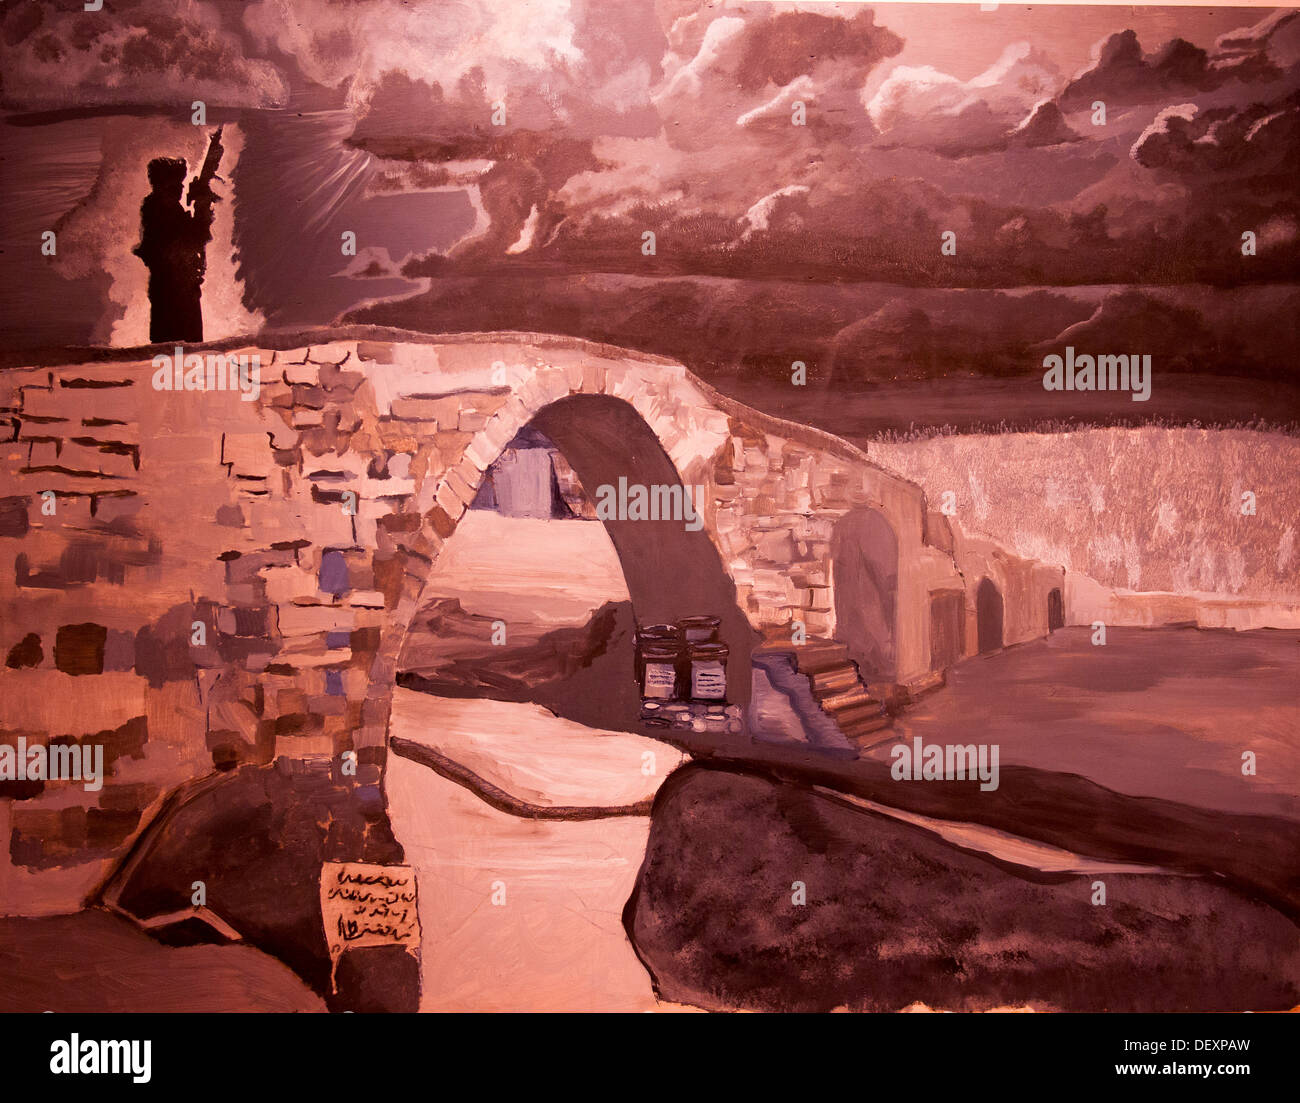 SAN DIEGO, Calif. -- The figure of a U.S. Marine stands sentinel in the dark and tumultuous world of a painting featured in the - Stock Image